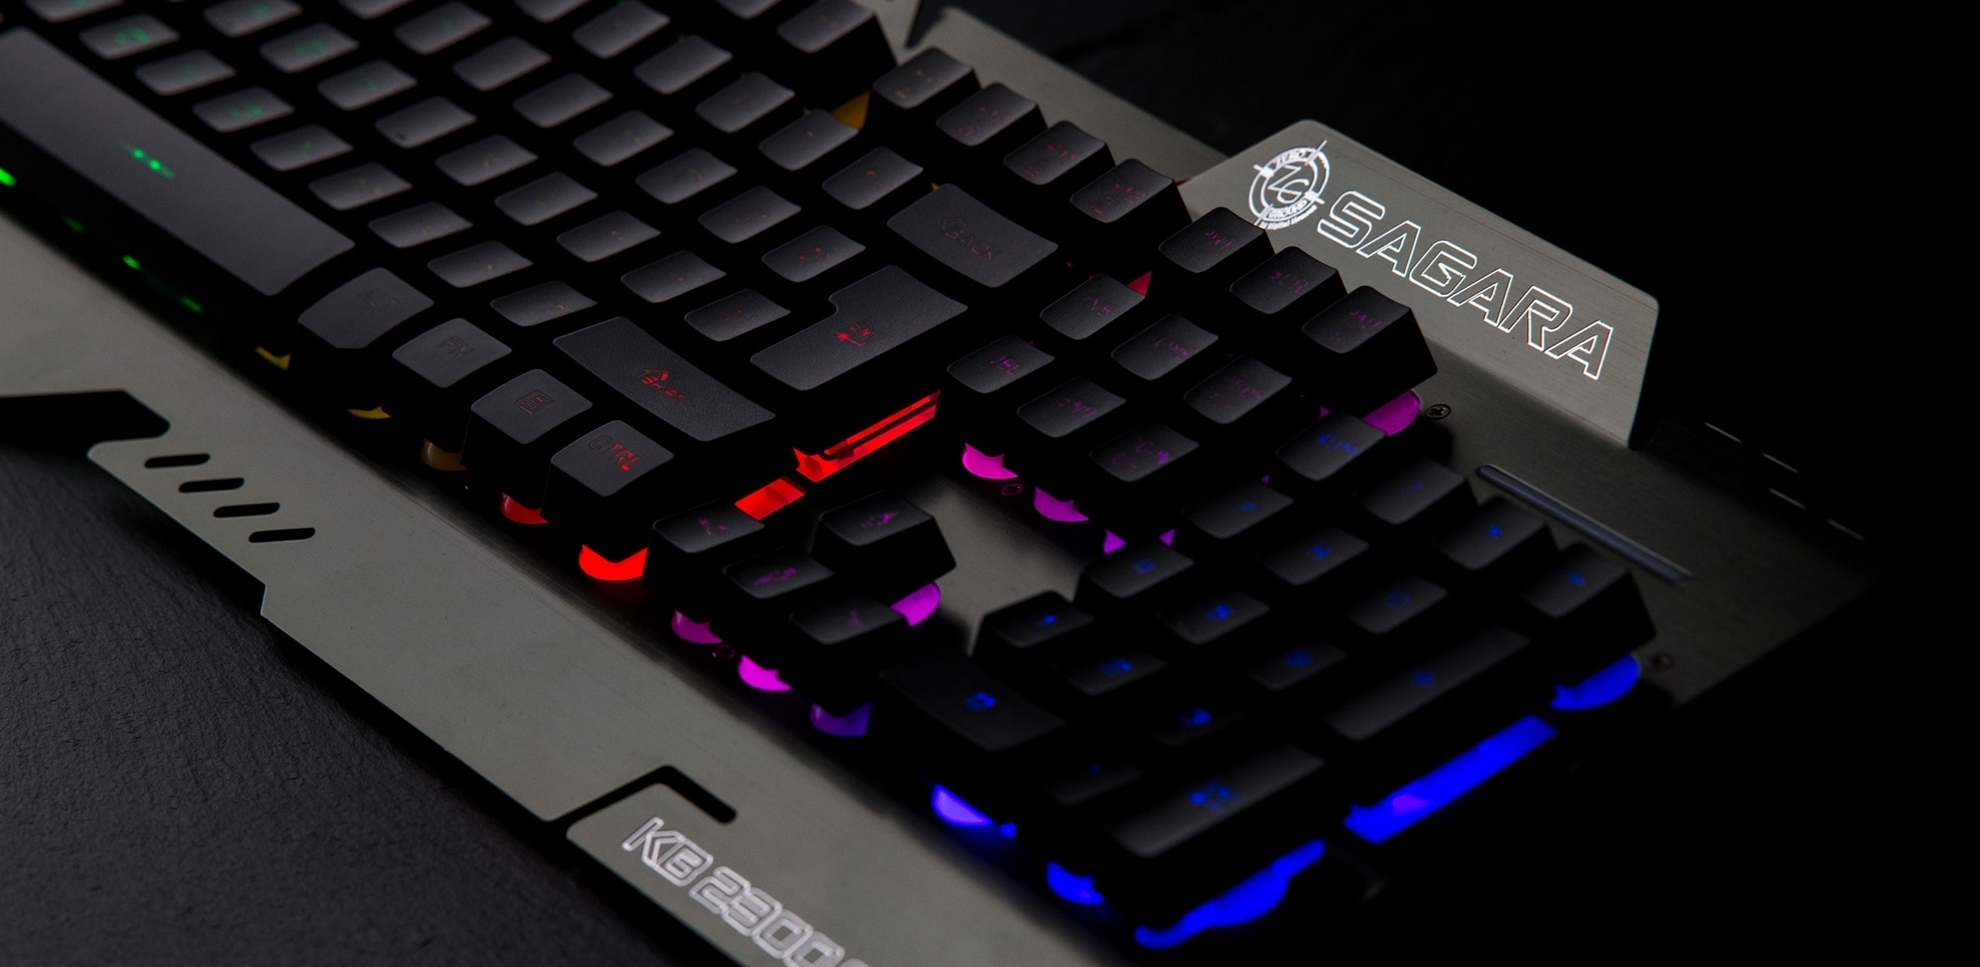 ZeroGround Sagara - Gaming keyboard